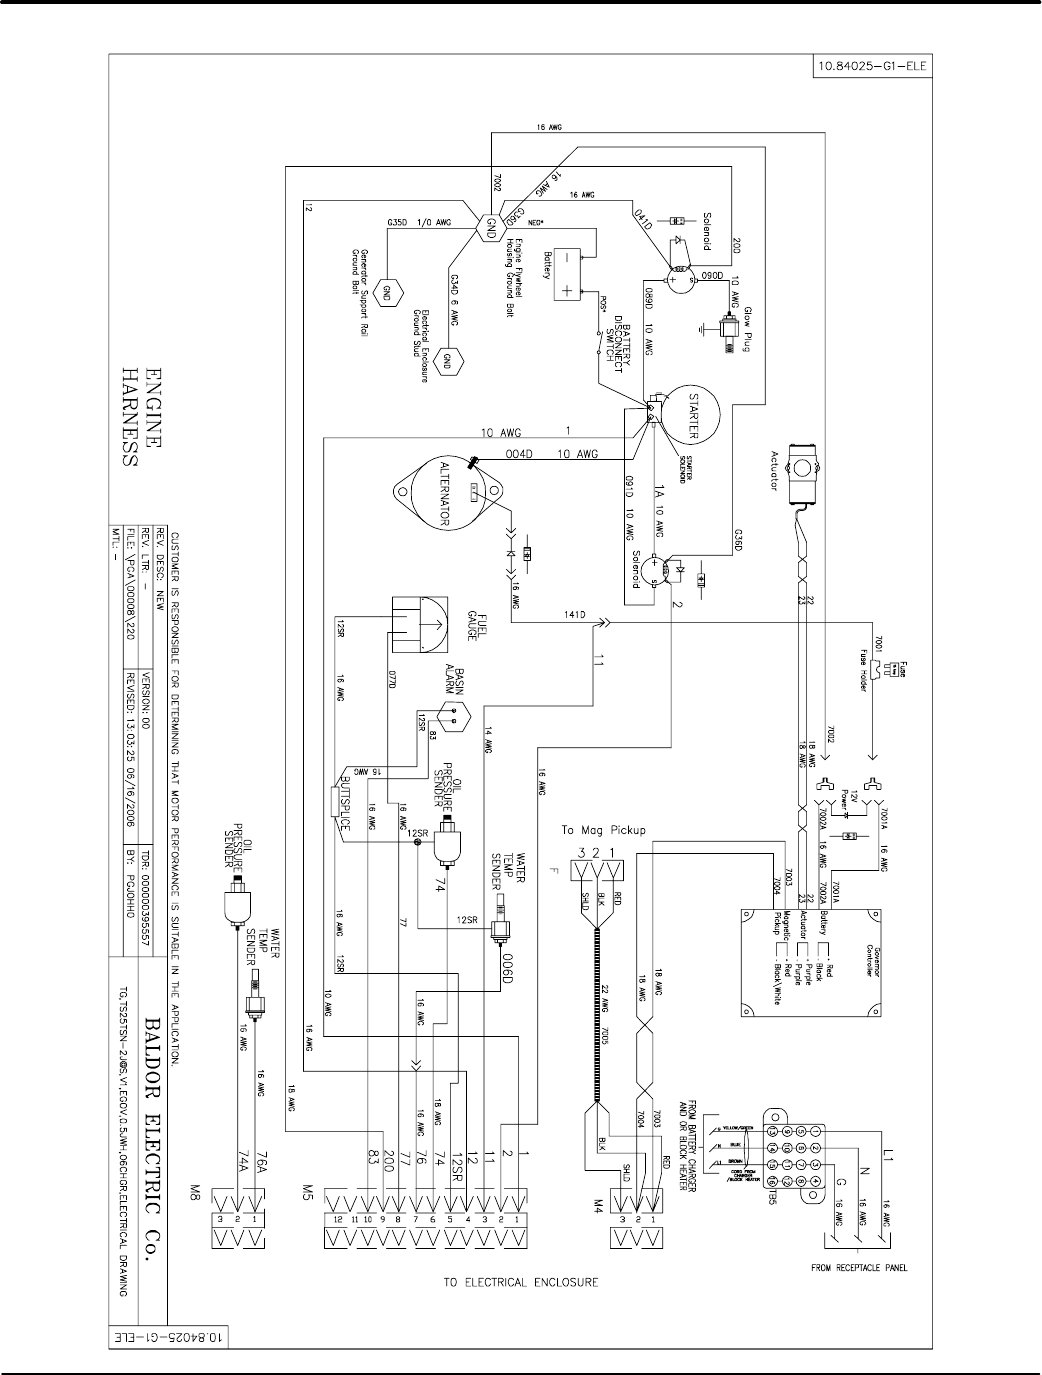 269cee50 4d34 4586 b021 d3aaa704d829 bg31 page 49 of baldor portable generator ts35 user guide baldor generator wiring diagram at gsmportal.co